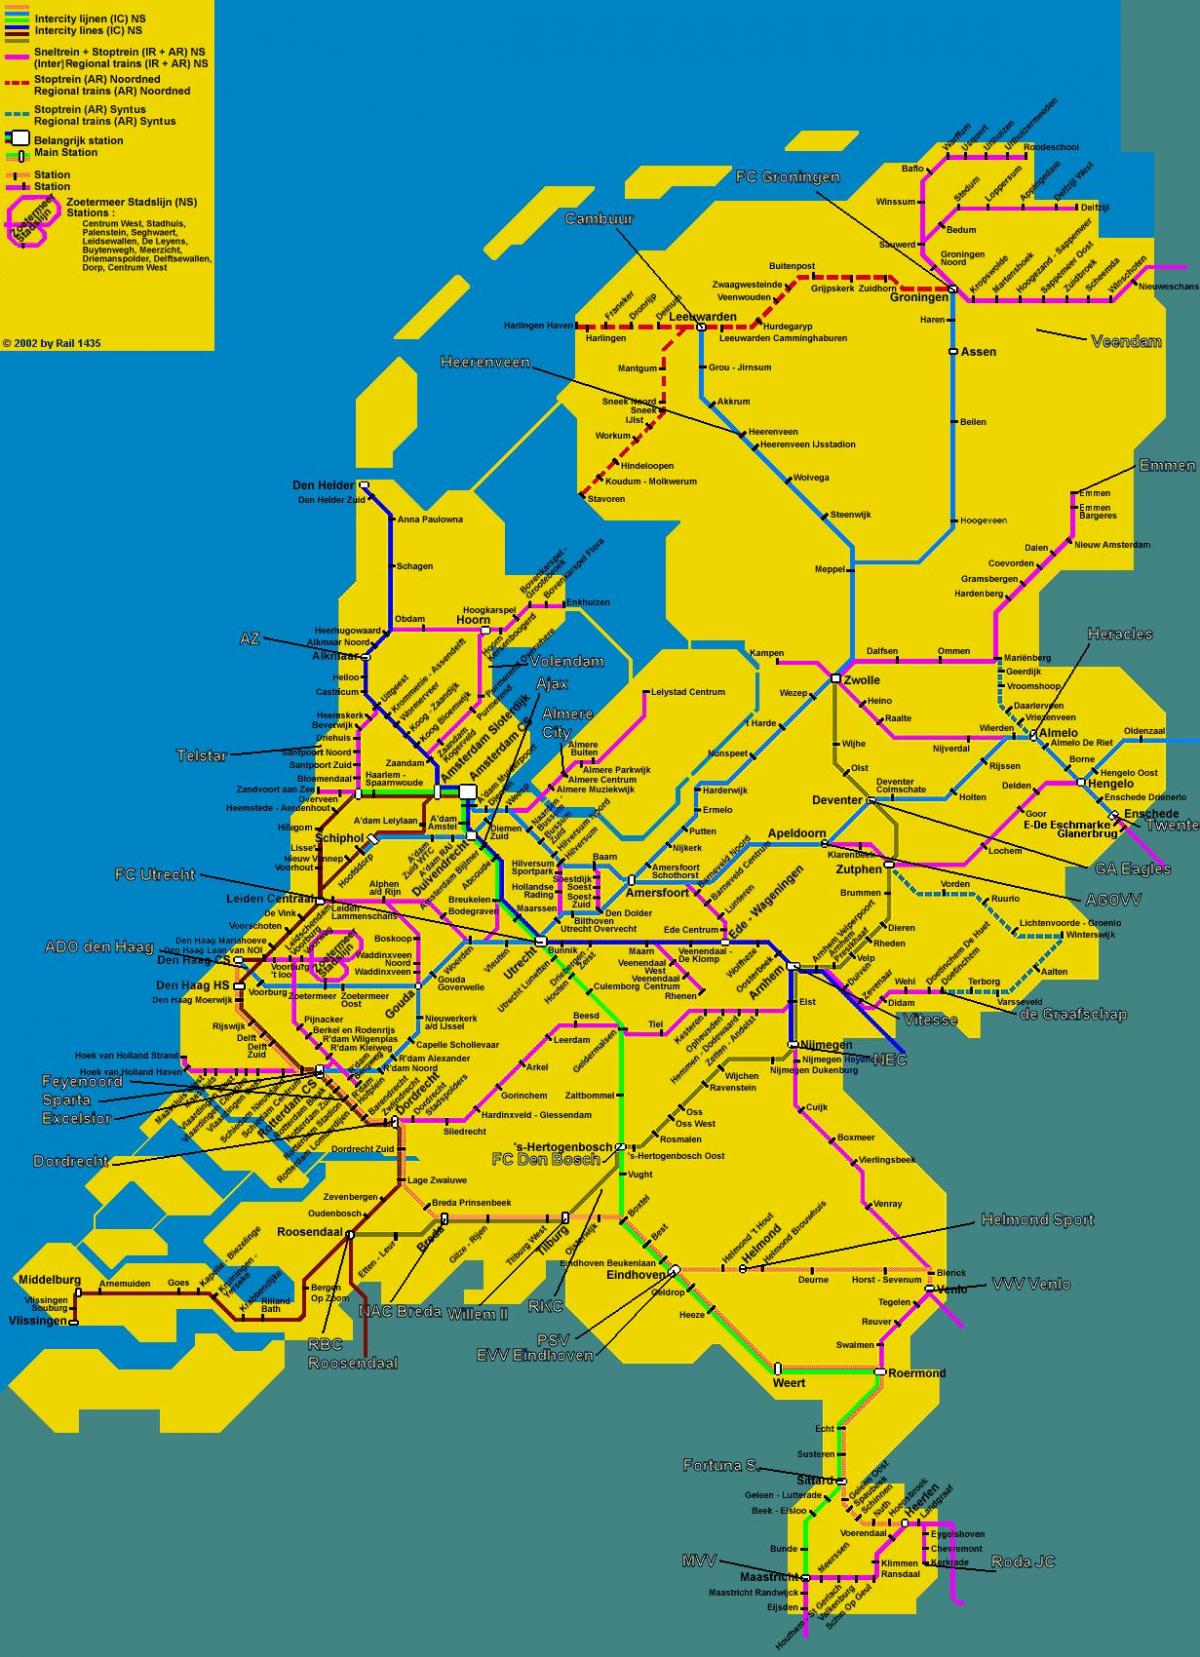 tog kart over Holland